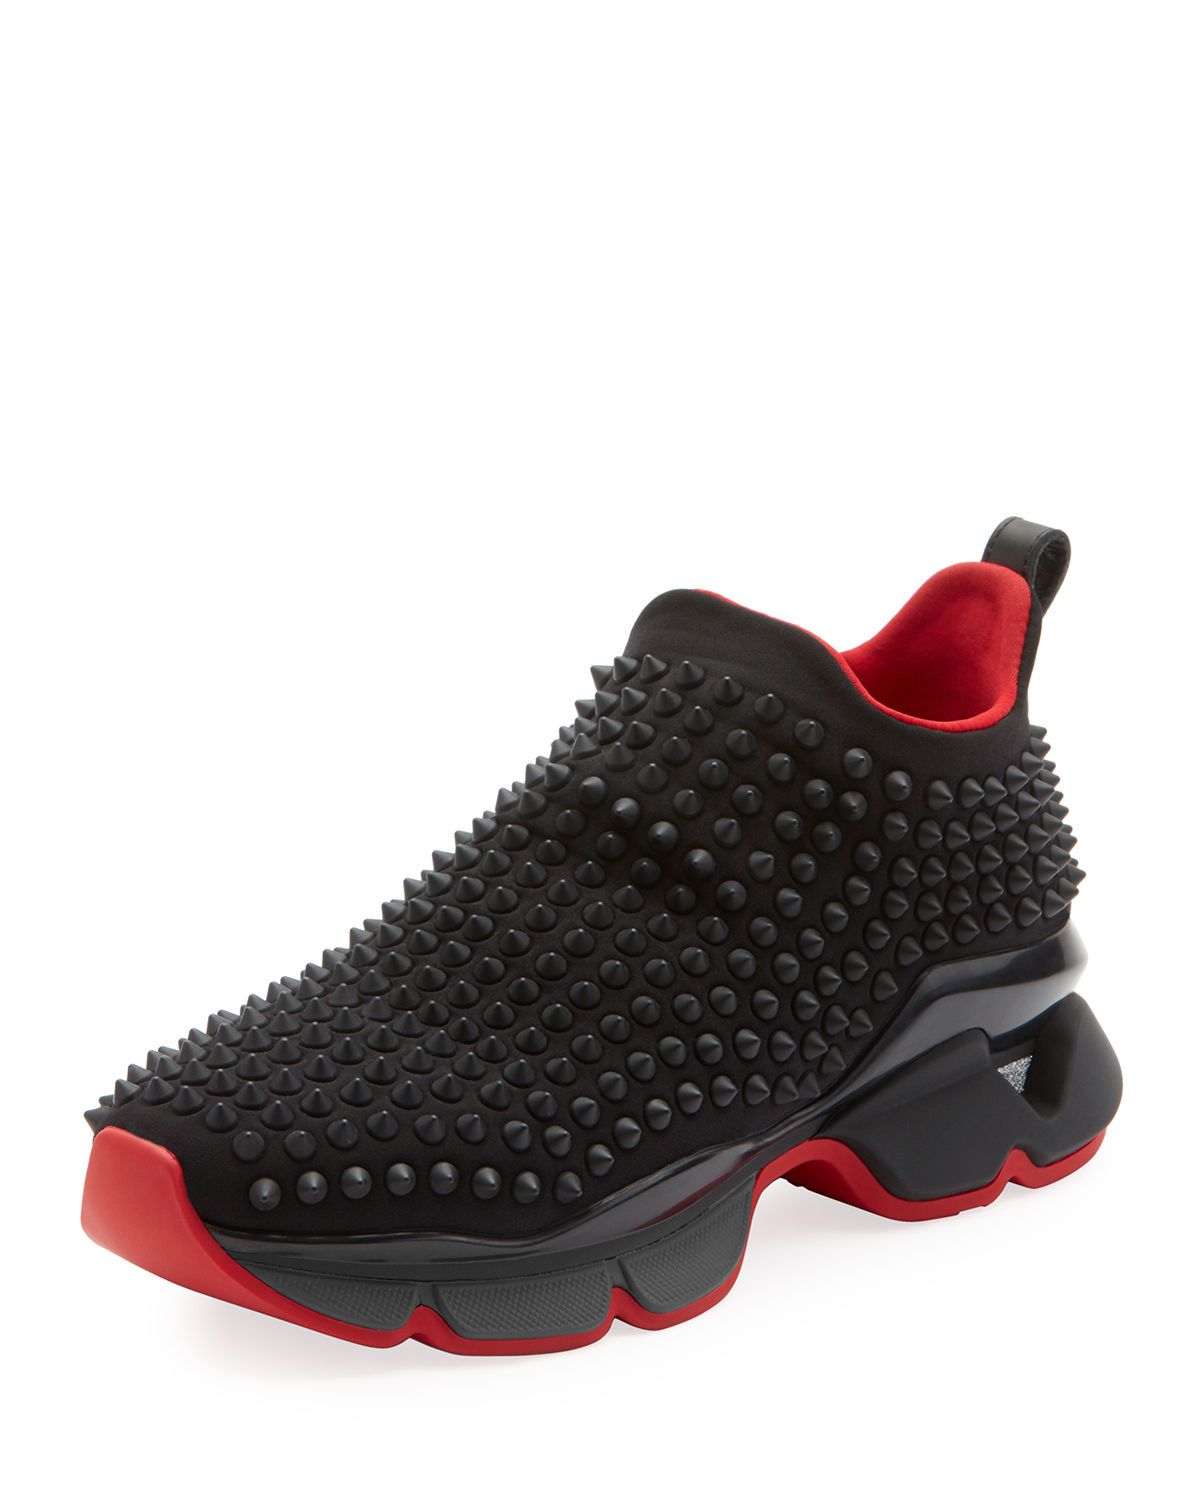 f33e580a348 Christian Louboutin Spike Sock Donna Flat Sneakers - Black